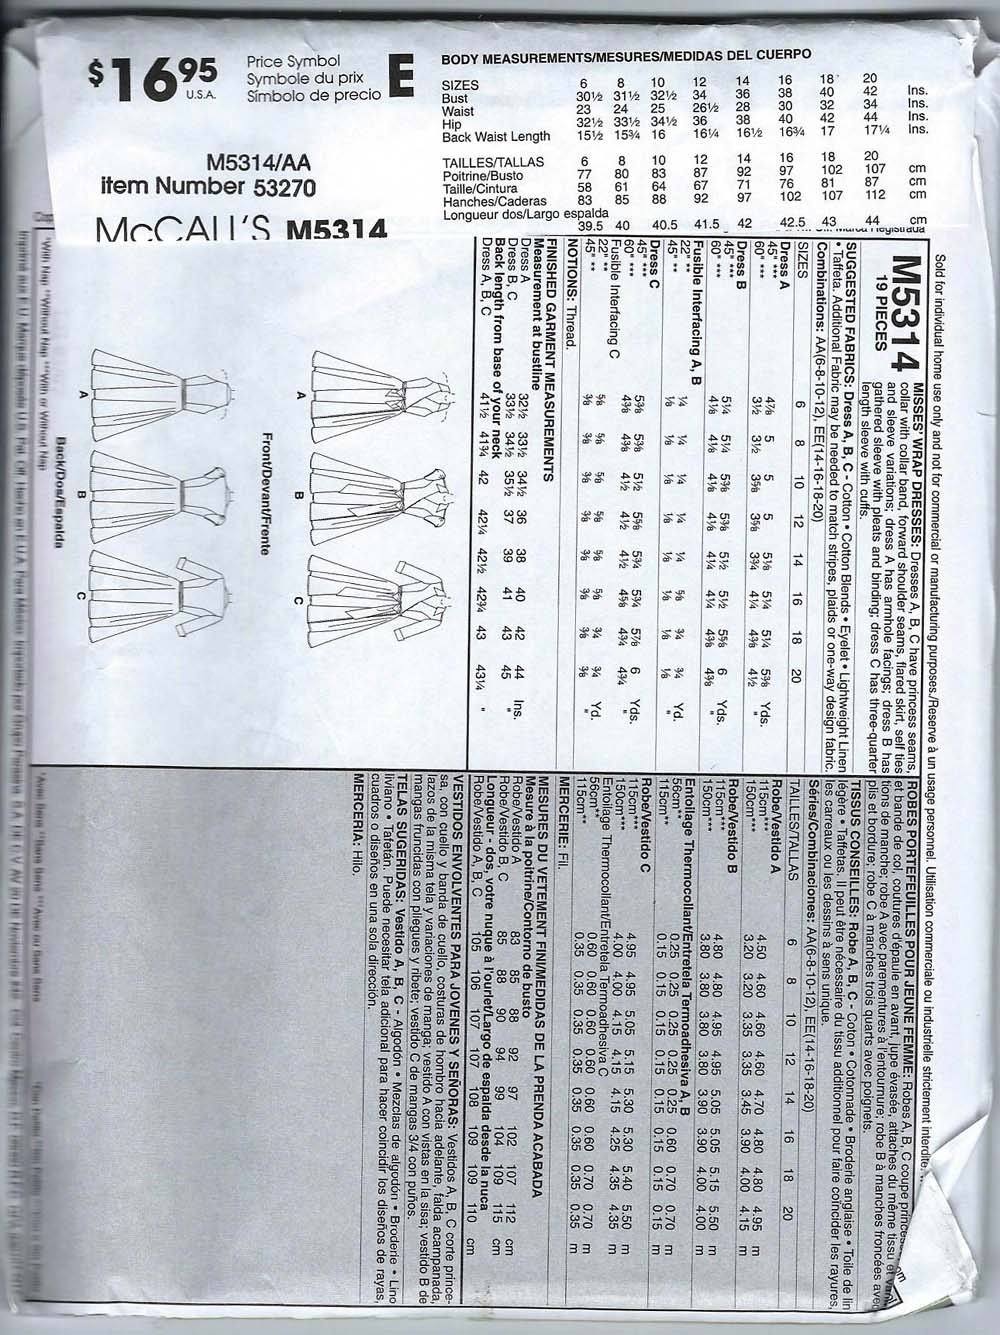 Amazon.com: Mccalls Sewing Pattern M5314 Misses Wrap Dress Size AA (6-8-10-12): Arts, Crafts & Sewing